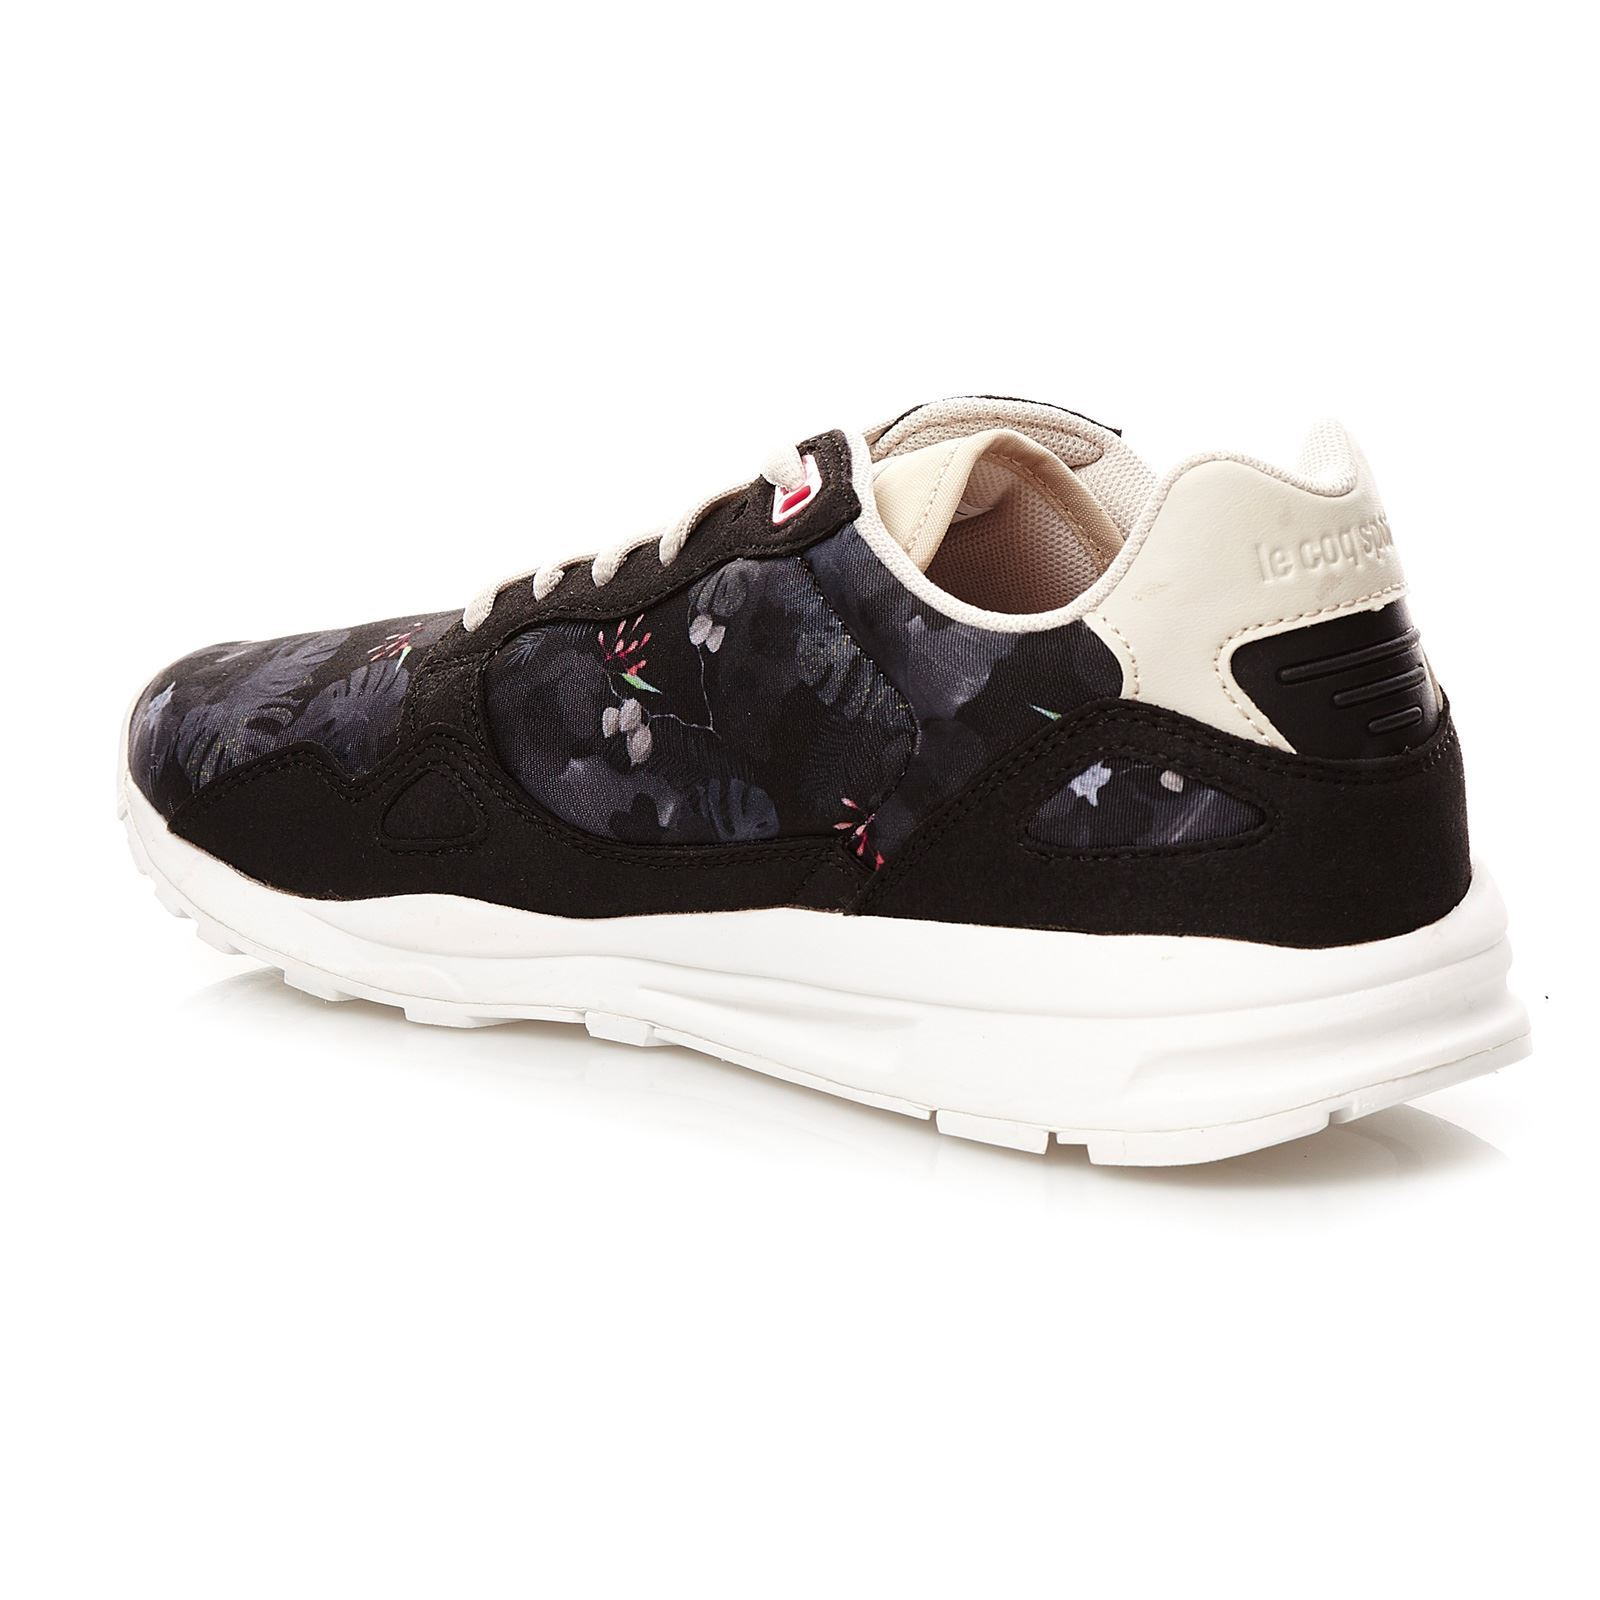 le coq sportif lcs r900 turnschuhe sneakers gemustert brandalley. Black Bedroom Furniture Sets. Home Design Ideas